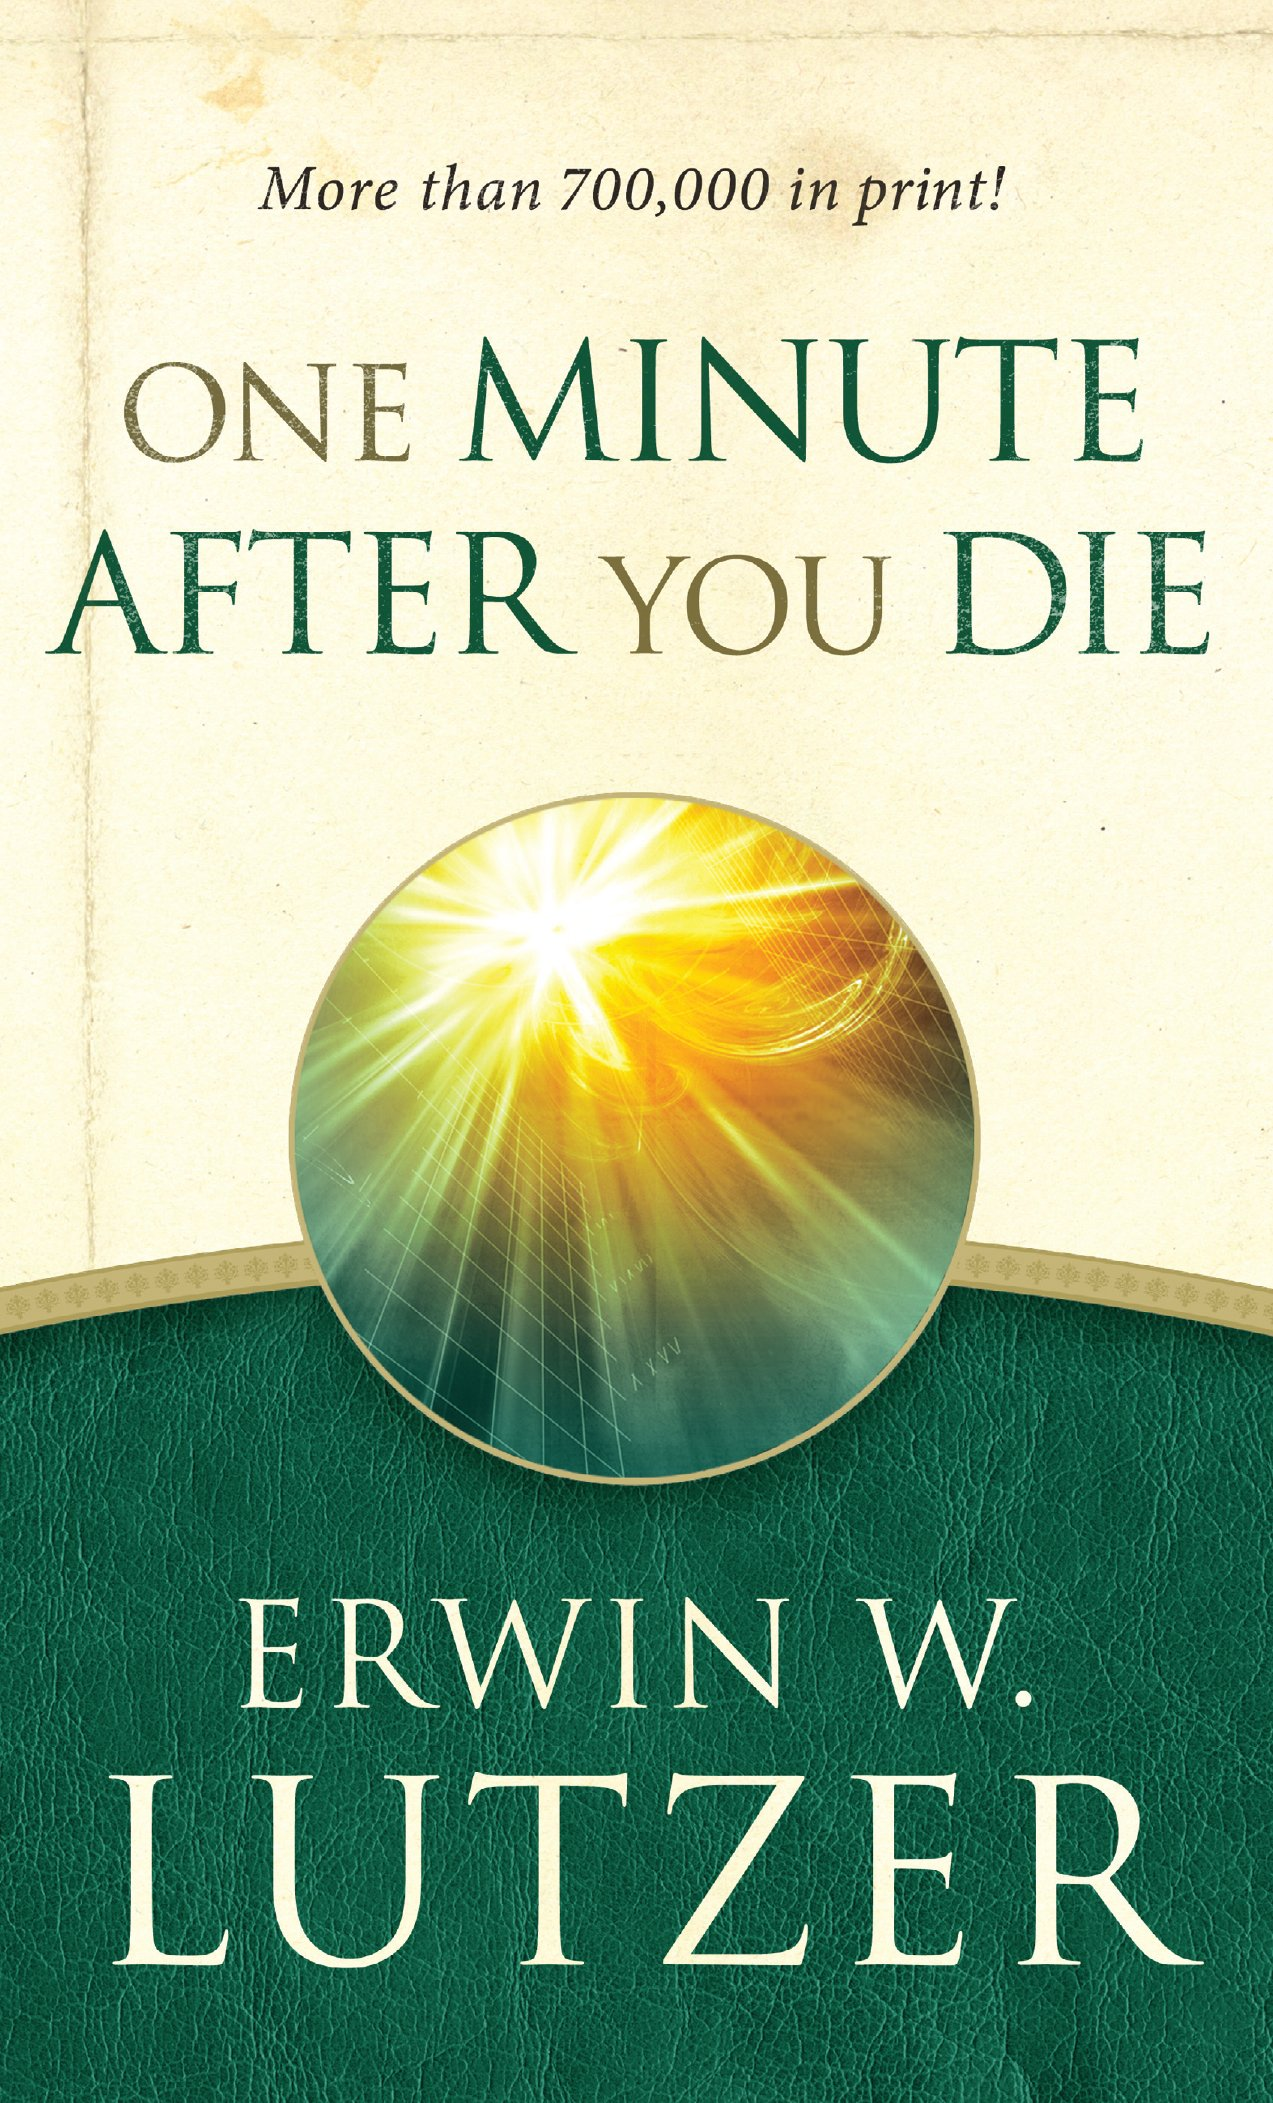 One Minute After You Die: Amazon.co.uk: Erwin W. Lutzer ...